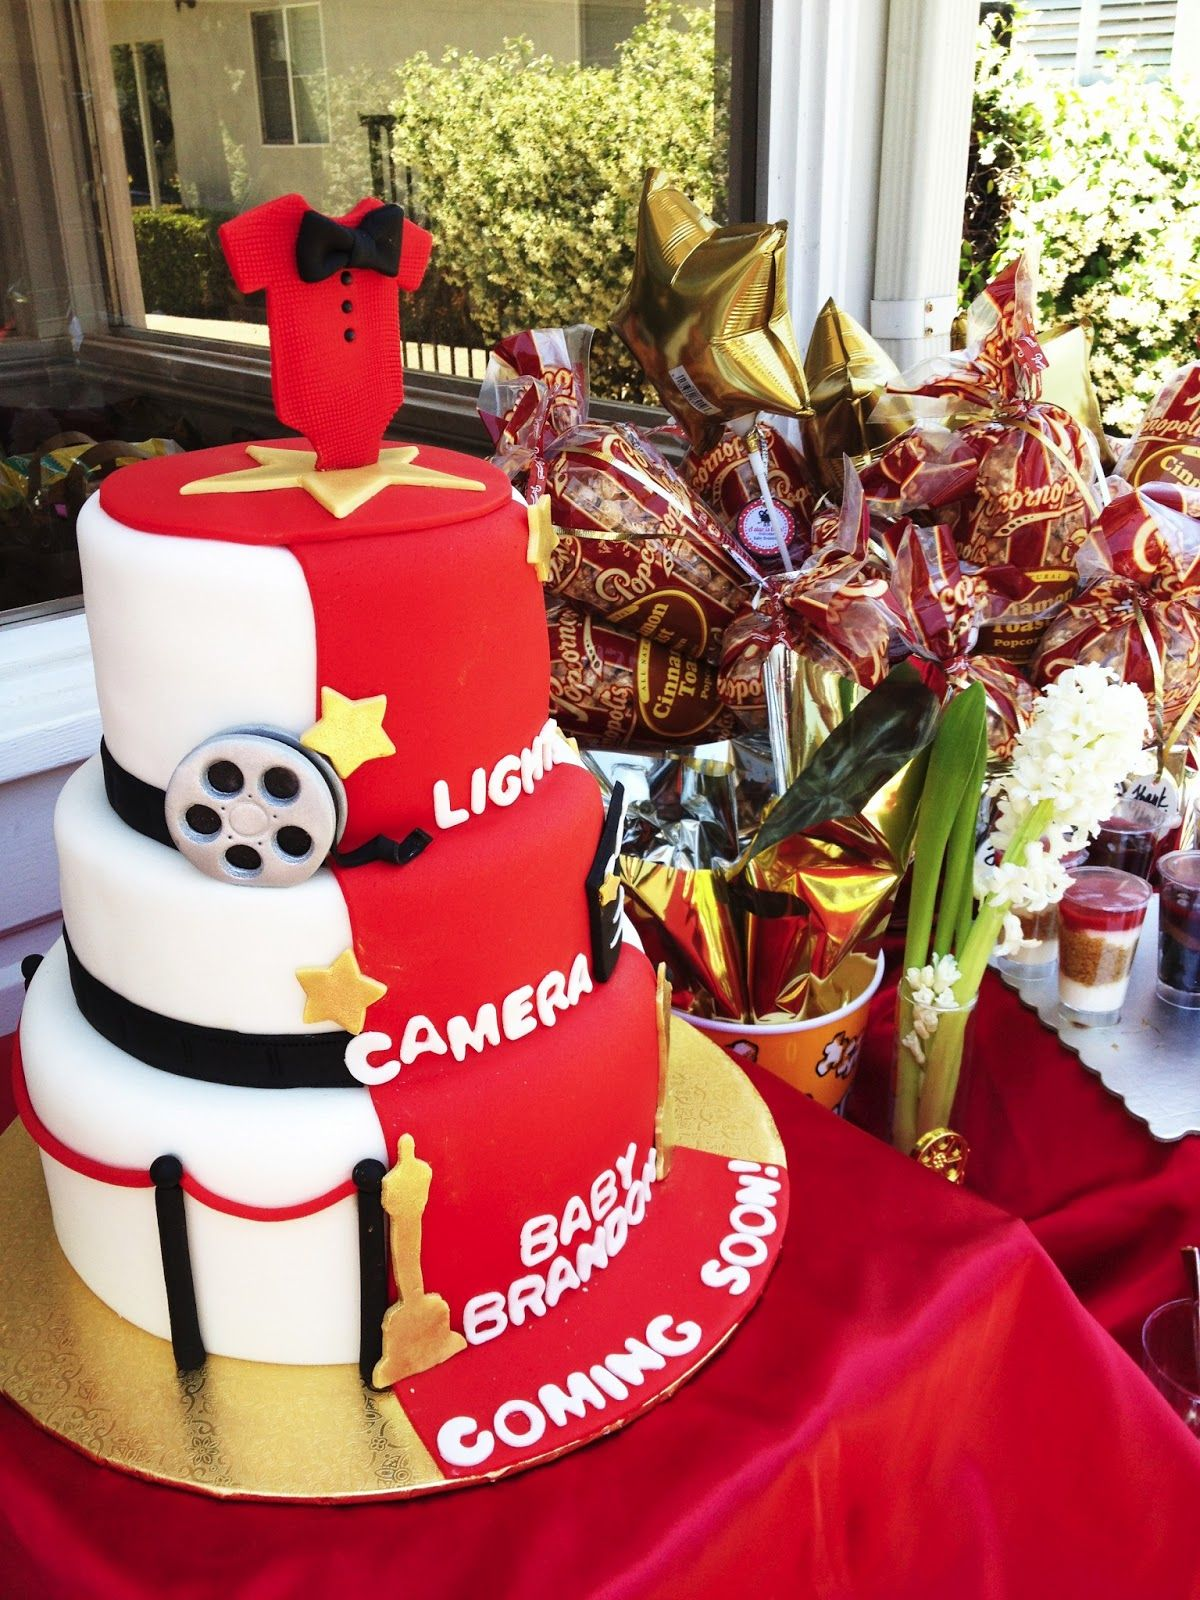 Scenes From A Hollywood Themed Baby Shower Red Carpet Paparazzi Movie  Production Director Cast Popcornopolis Gold Star Silver Screen Oscar Gold  Walk Of Fame ...